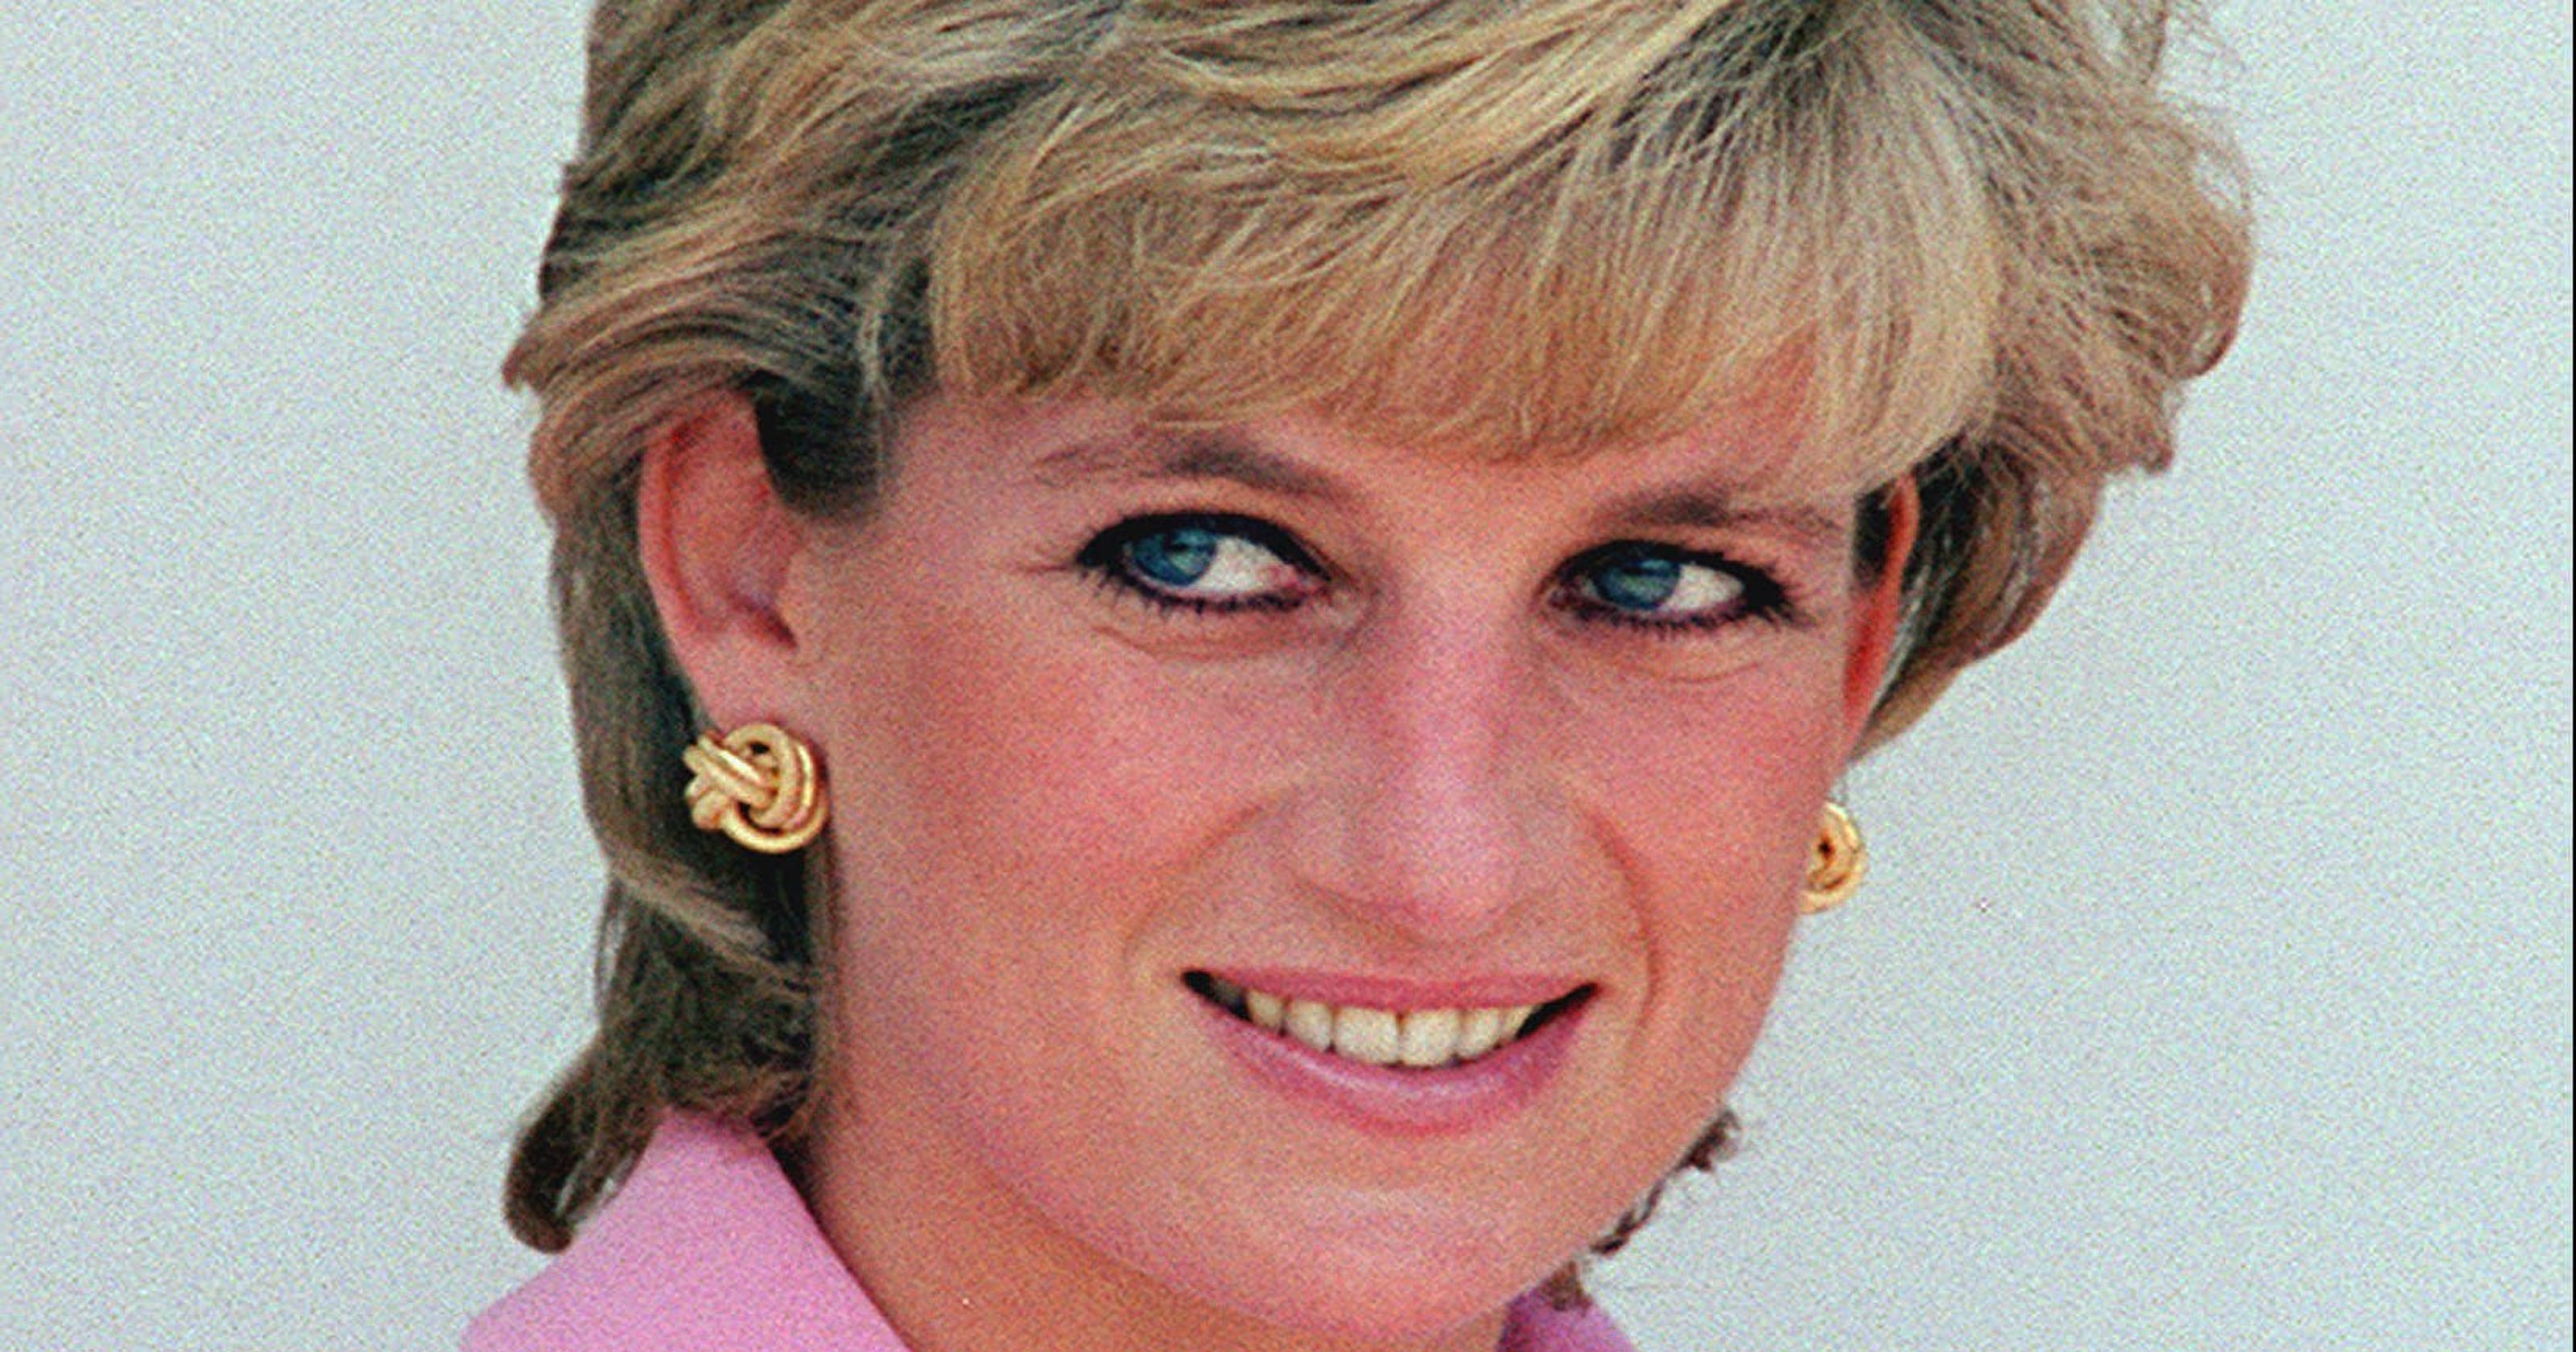 famous faces diana dementia france crash early height know